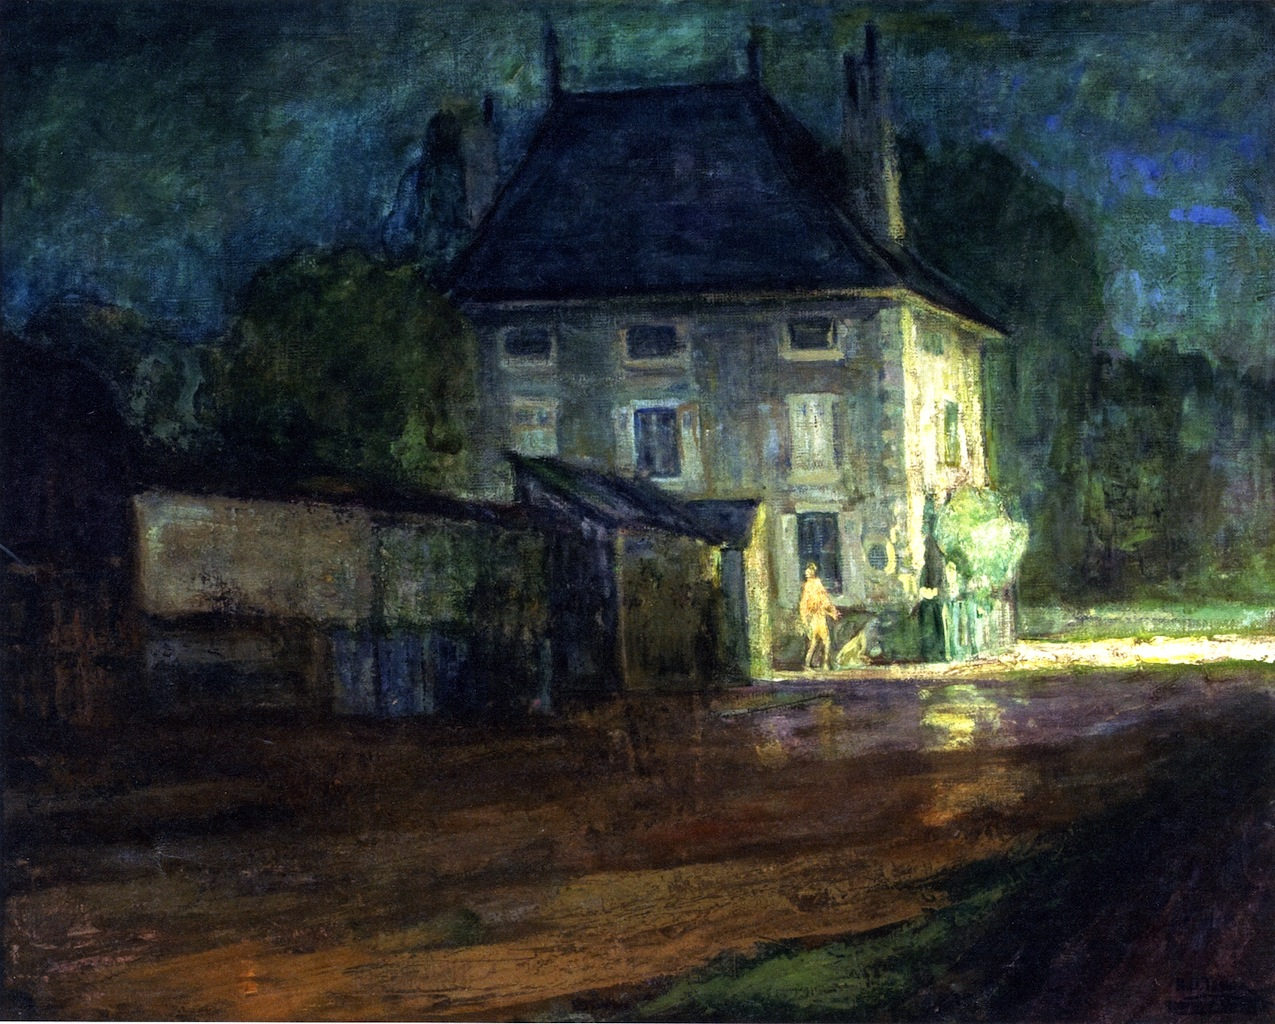 Henry-Ossawa-Tanner-xx-Neufchateau-xx-Private-collection (1).jpg